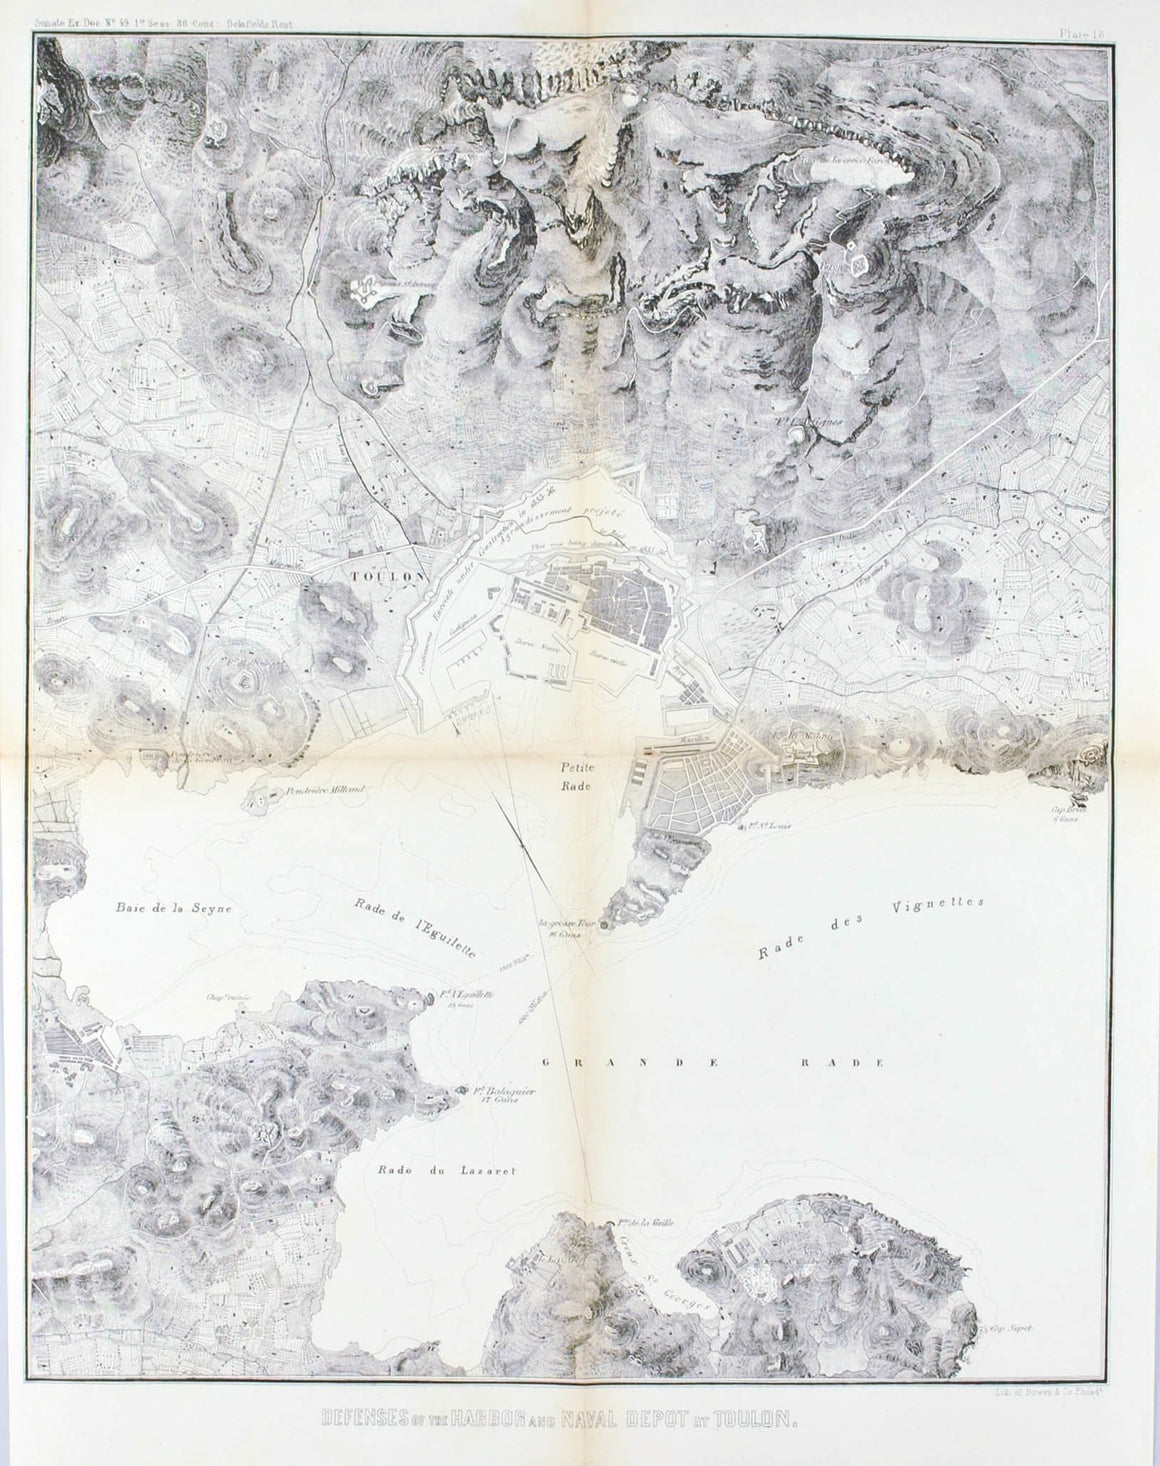 Defenses Of The Harbor And Naval Depot at Toulon Battle Plan 1860 Print